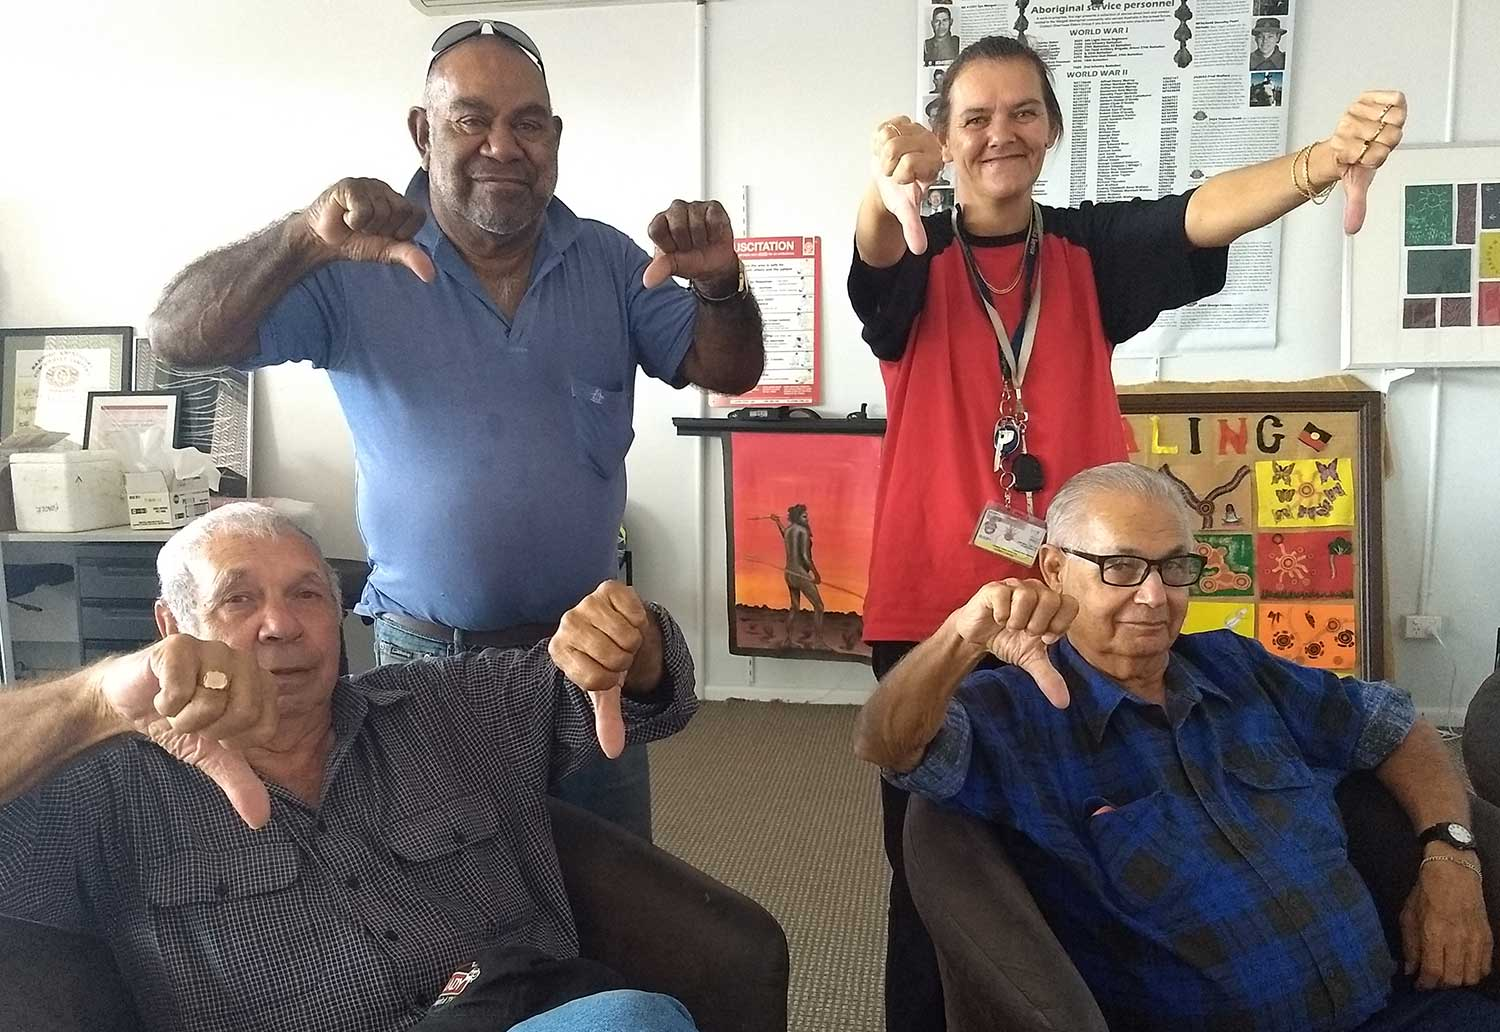 DEG's Richard Lake, Clem Dodd and Lewis Beale with staffmember Vanessa Hickey after endorsing the final version of the DEG's submission in response to the Aboriginal Cultural Heritage Bill 2018 (NSW) 18/4/18.